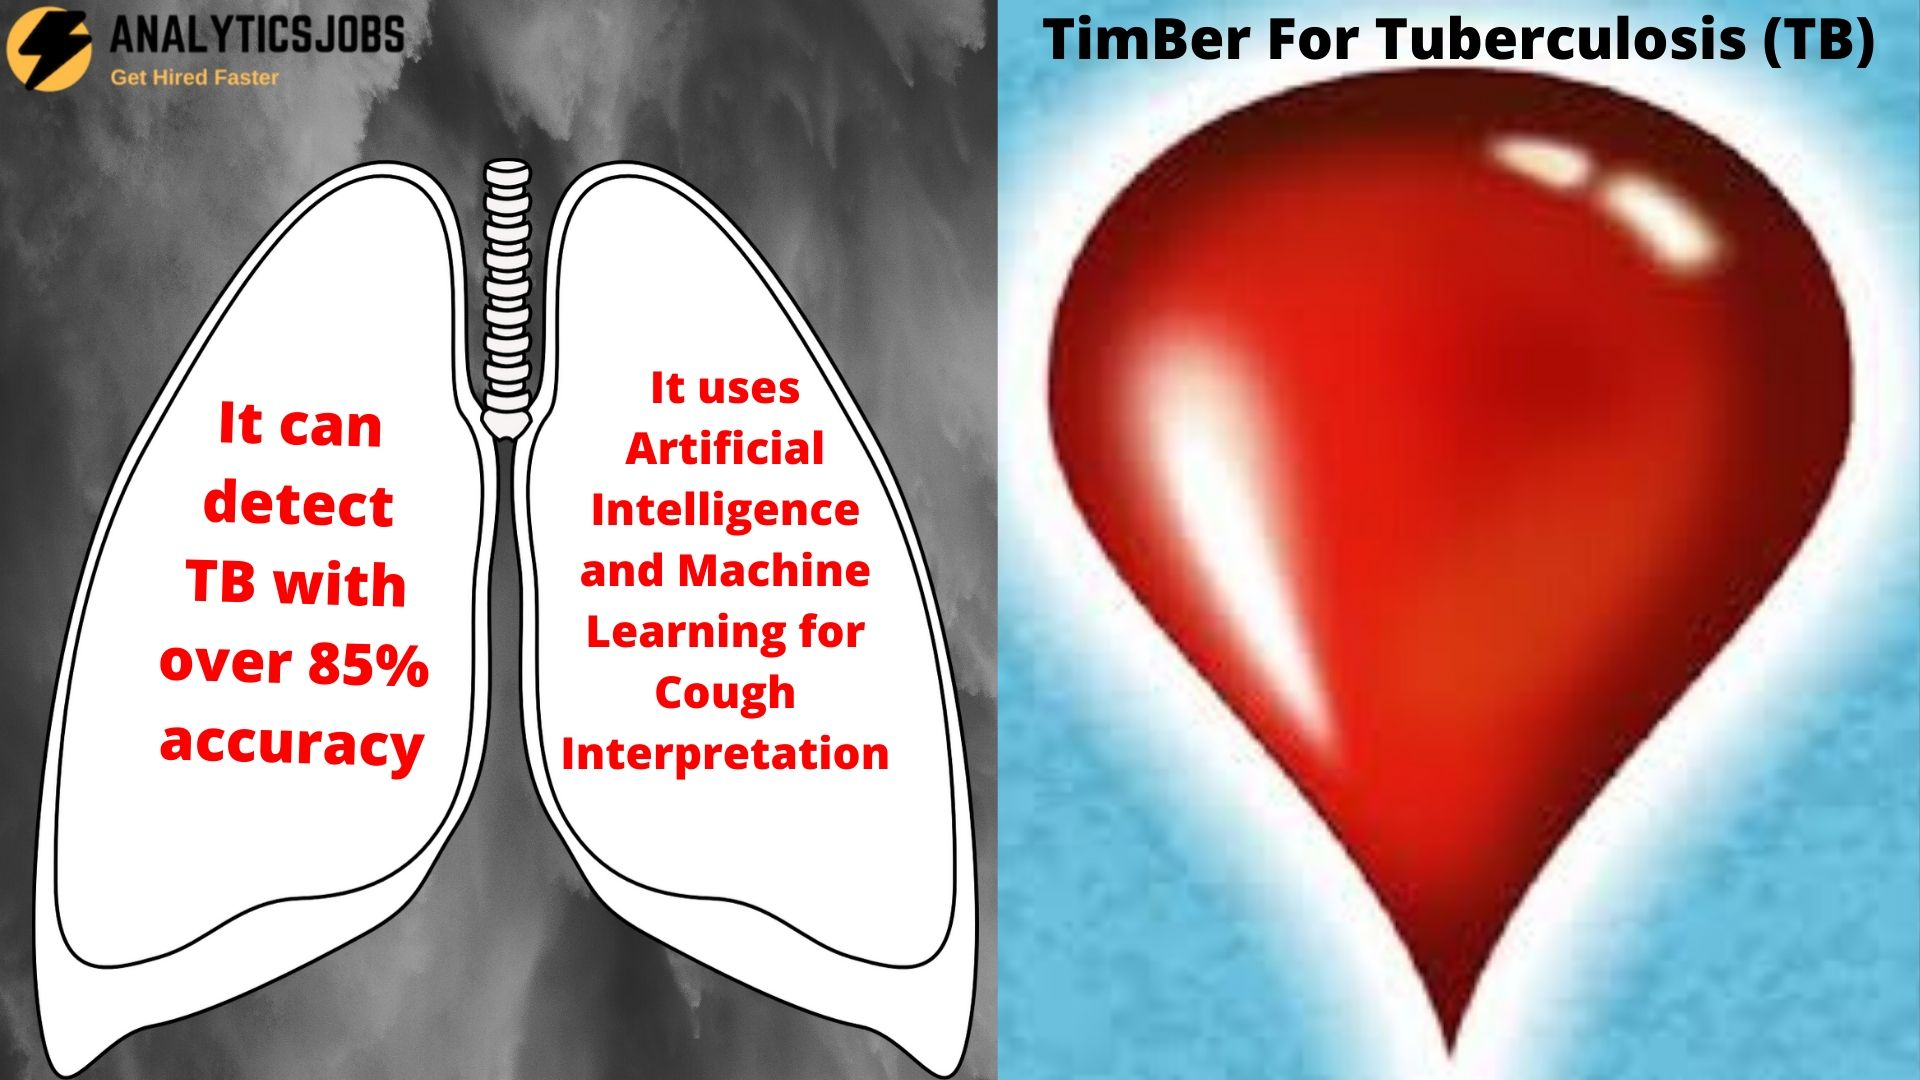 TimBer For Tuberculosis (TB) an application detecting Tuberculosis by listening the sound of your cough